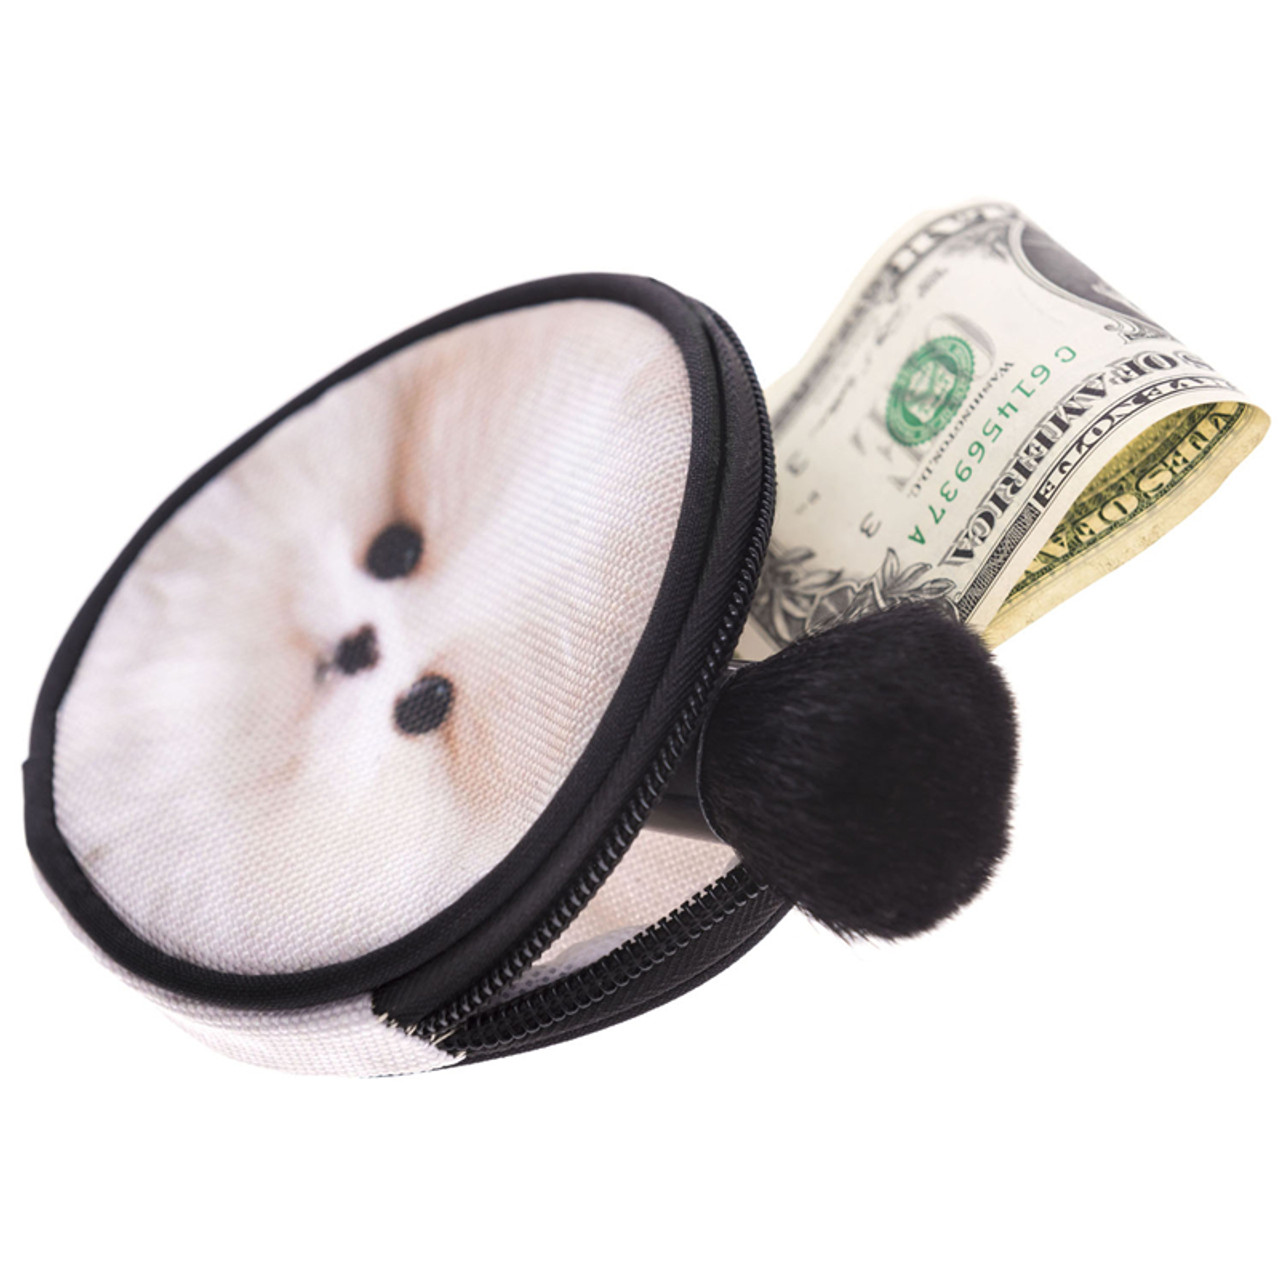 Puppy Round Graphic Print Coin Purse - 18 Styles shown with cash and makeup brush sticking out